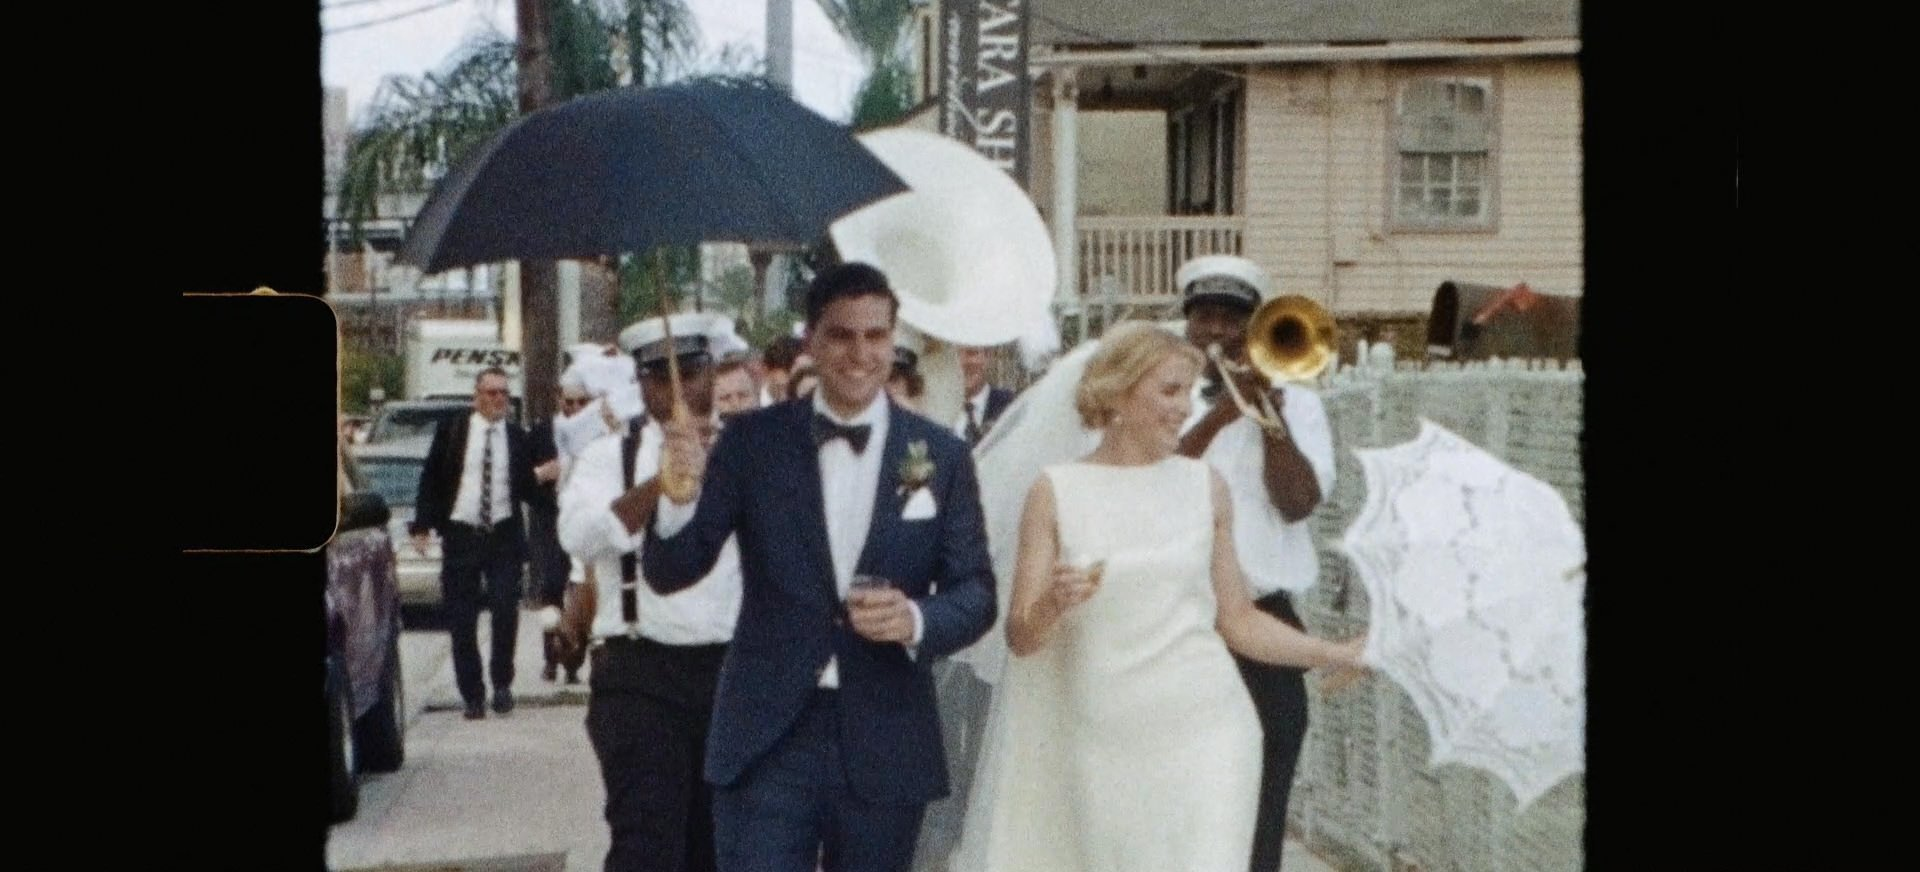 new orleans super 8 wedding video